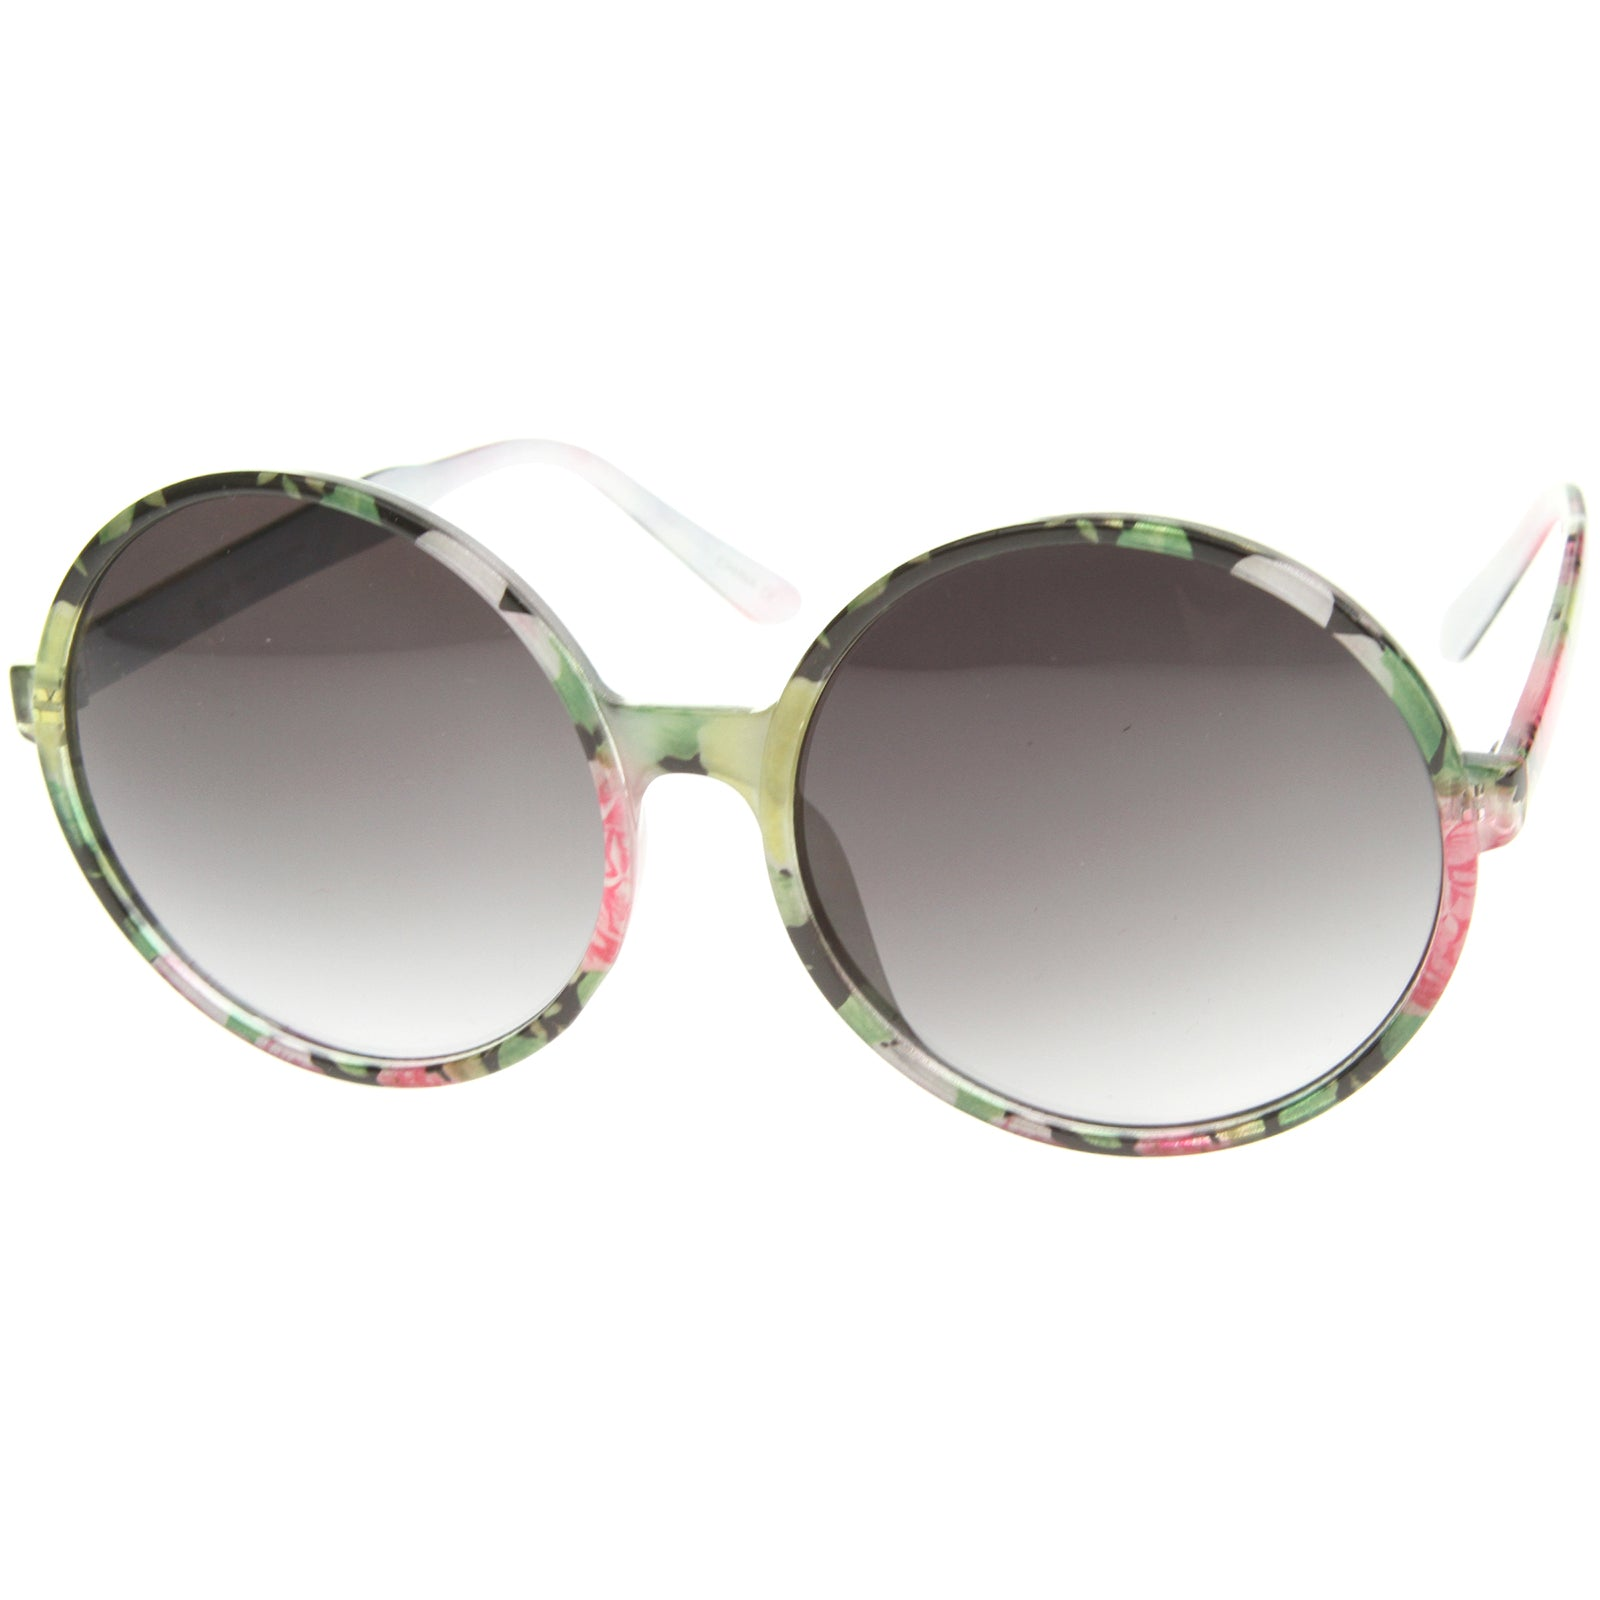 Women's Fashion Floral Print Gradient Lens Oversize Round Sunglasses 66mm - sunglass.la - 6